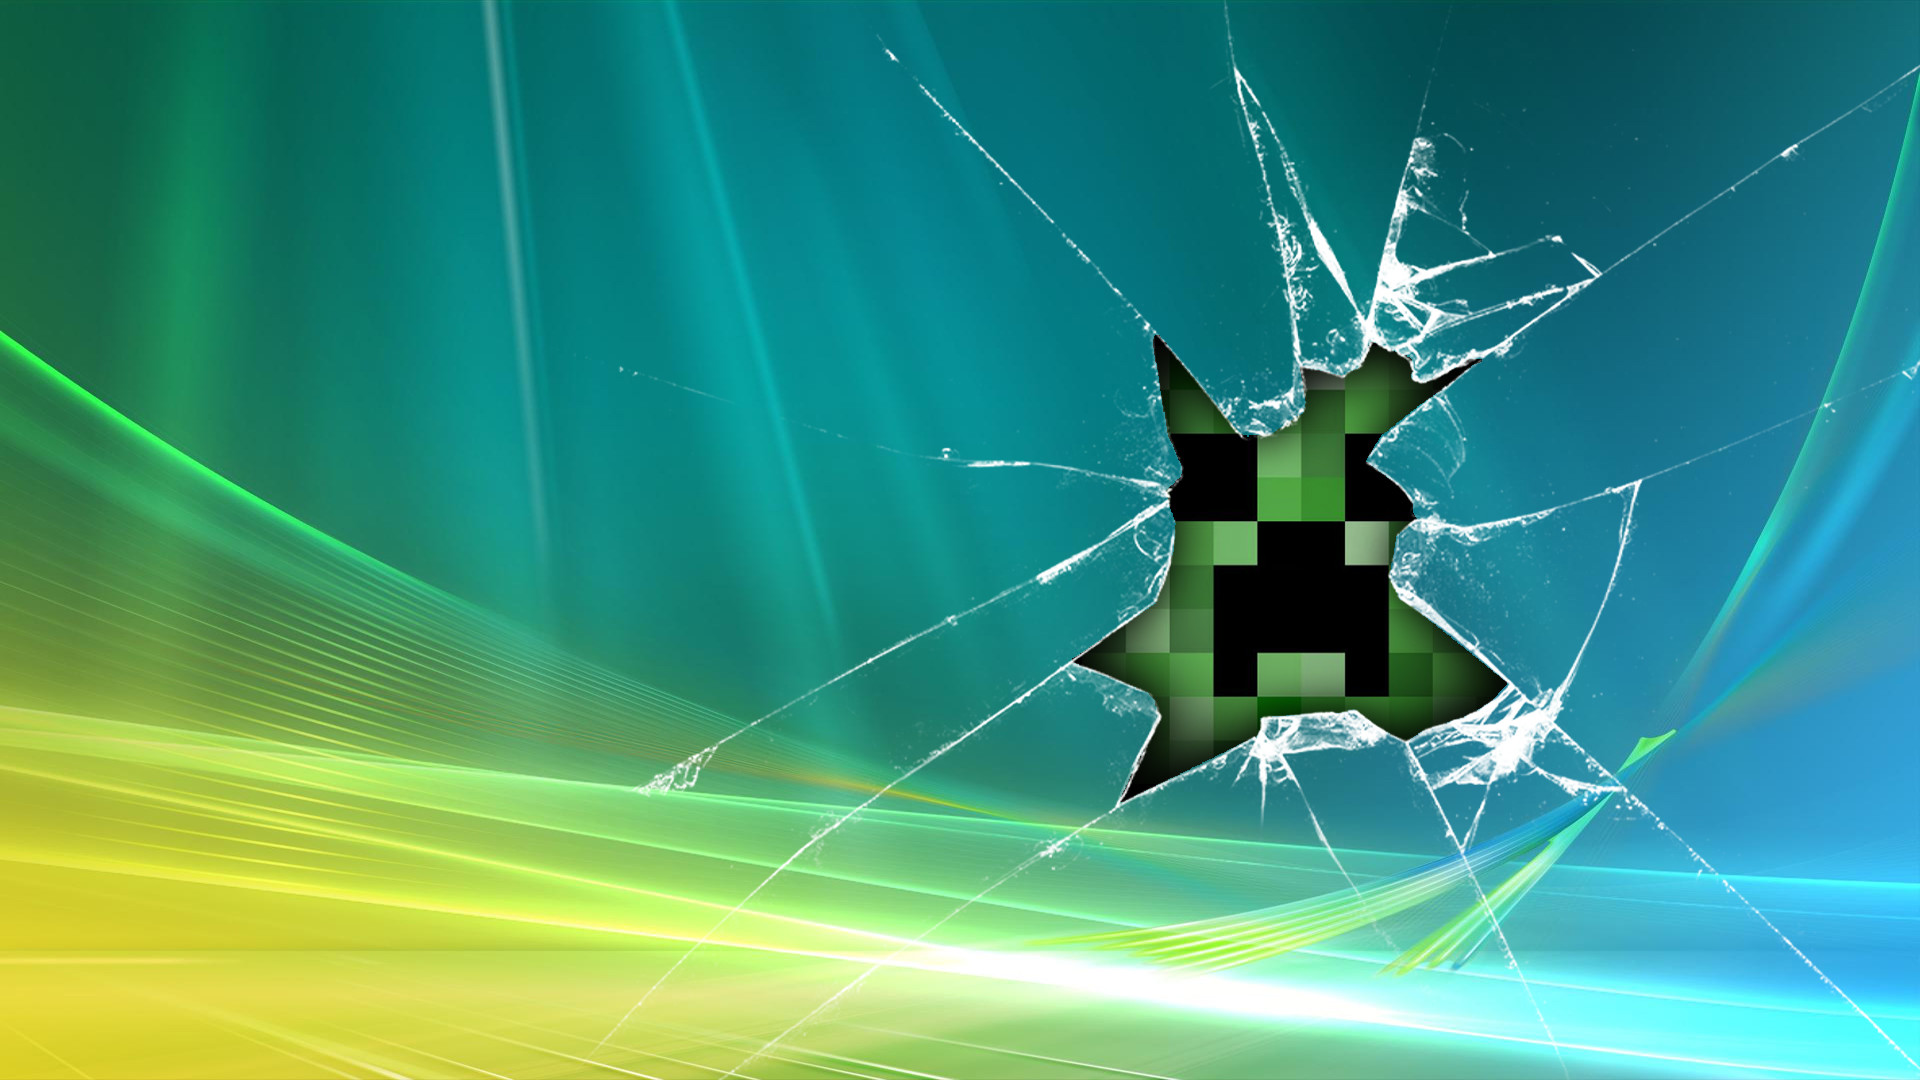 Cracked Screen Wallpaper Windows 10 77 Images